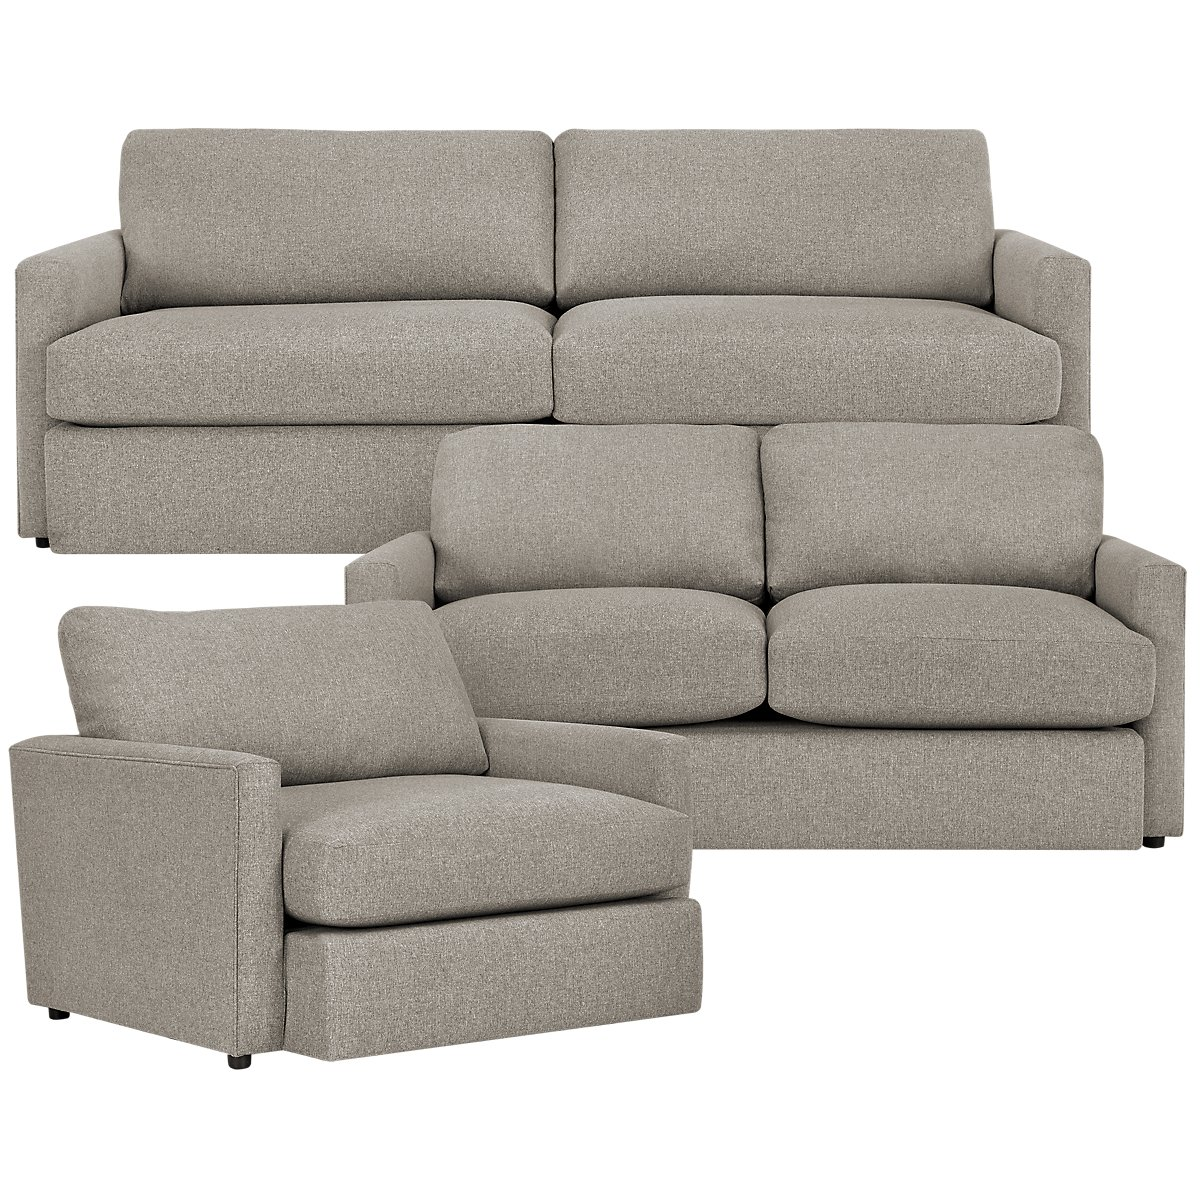 Noah Khaki Fabric Living Room